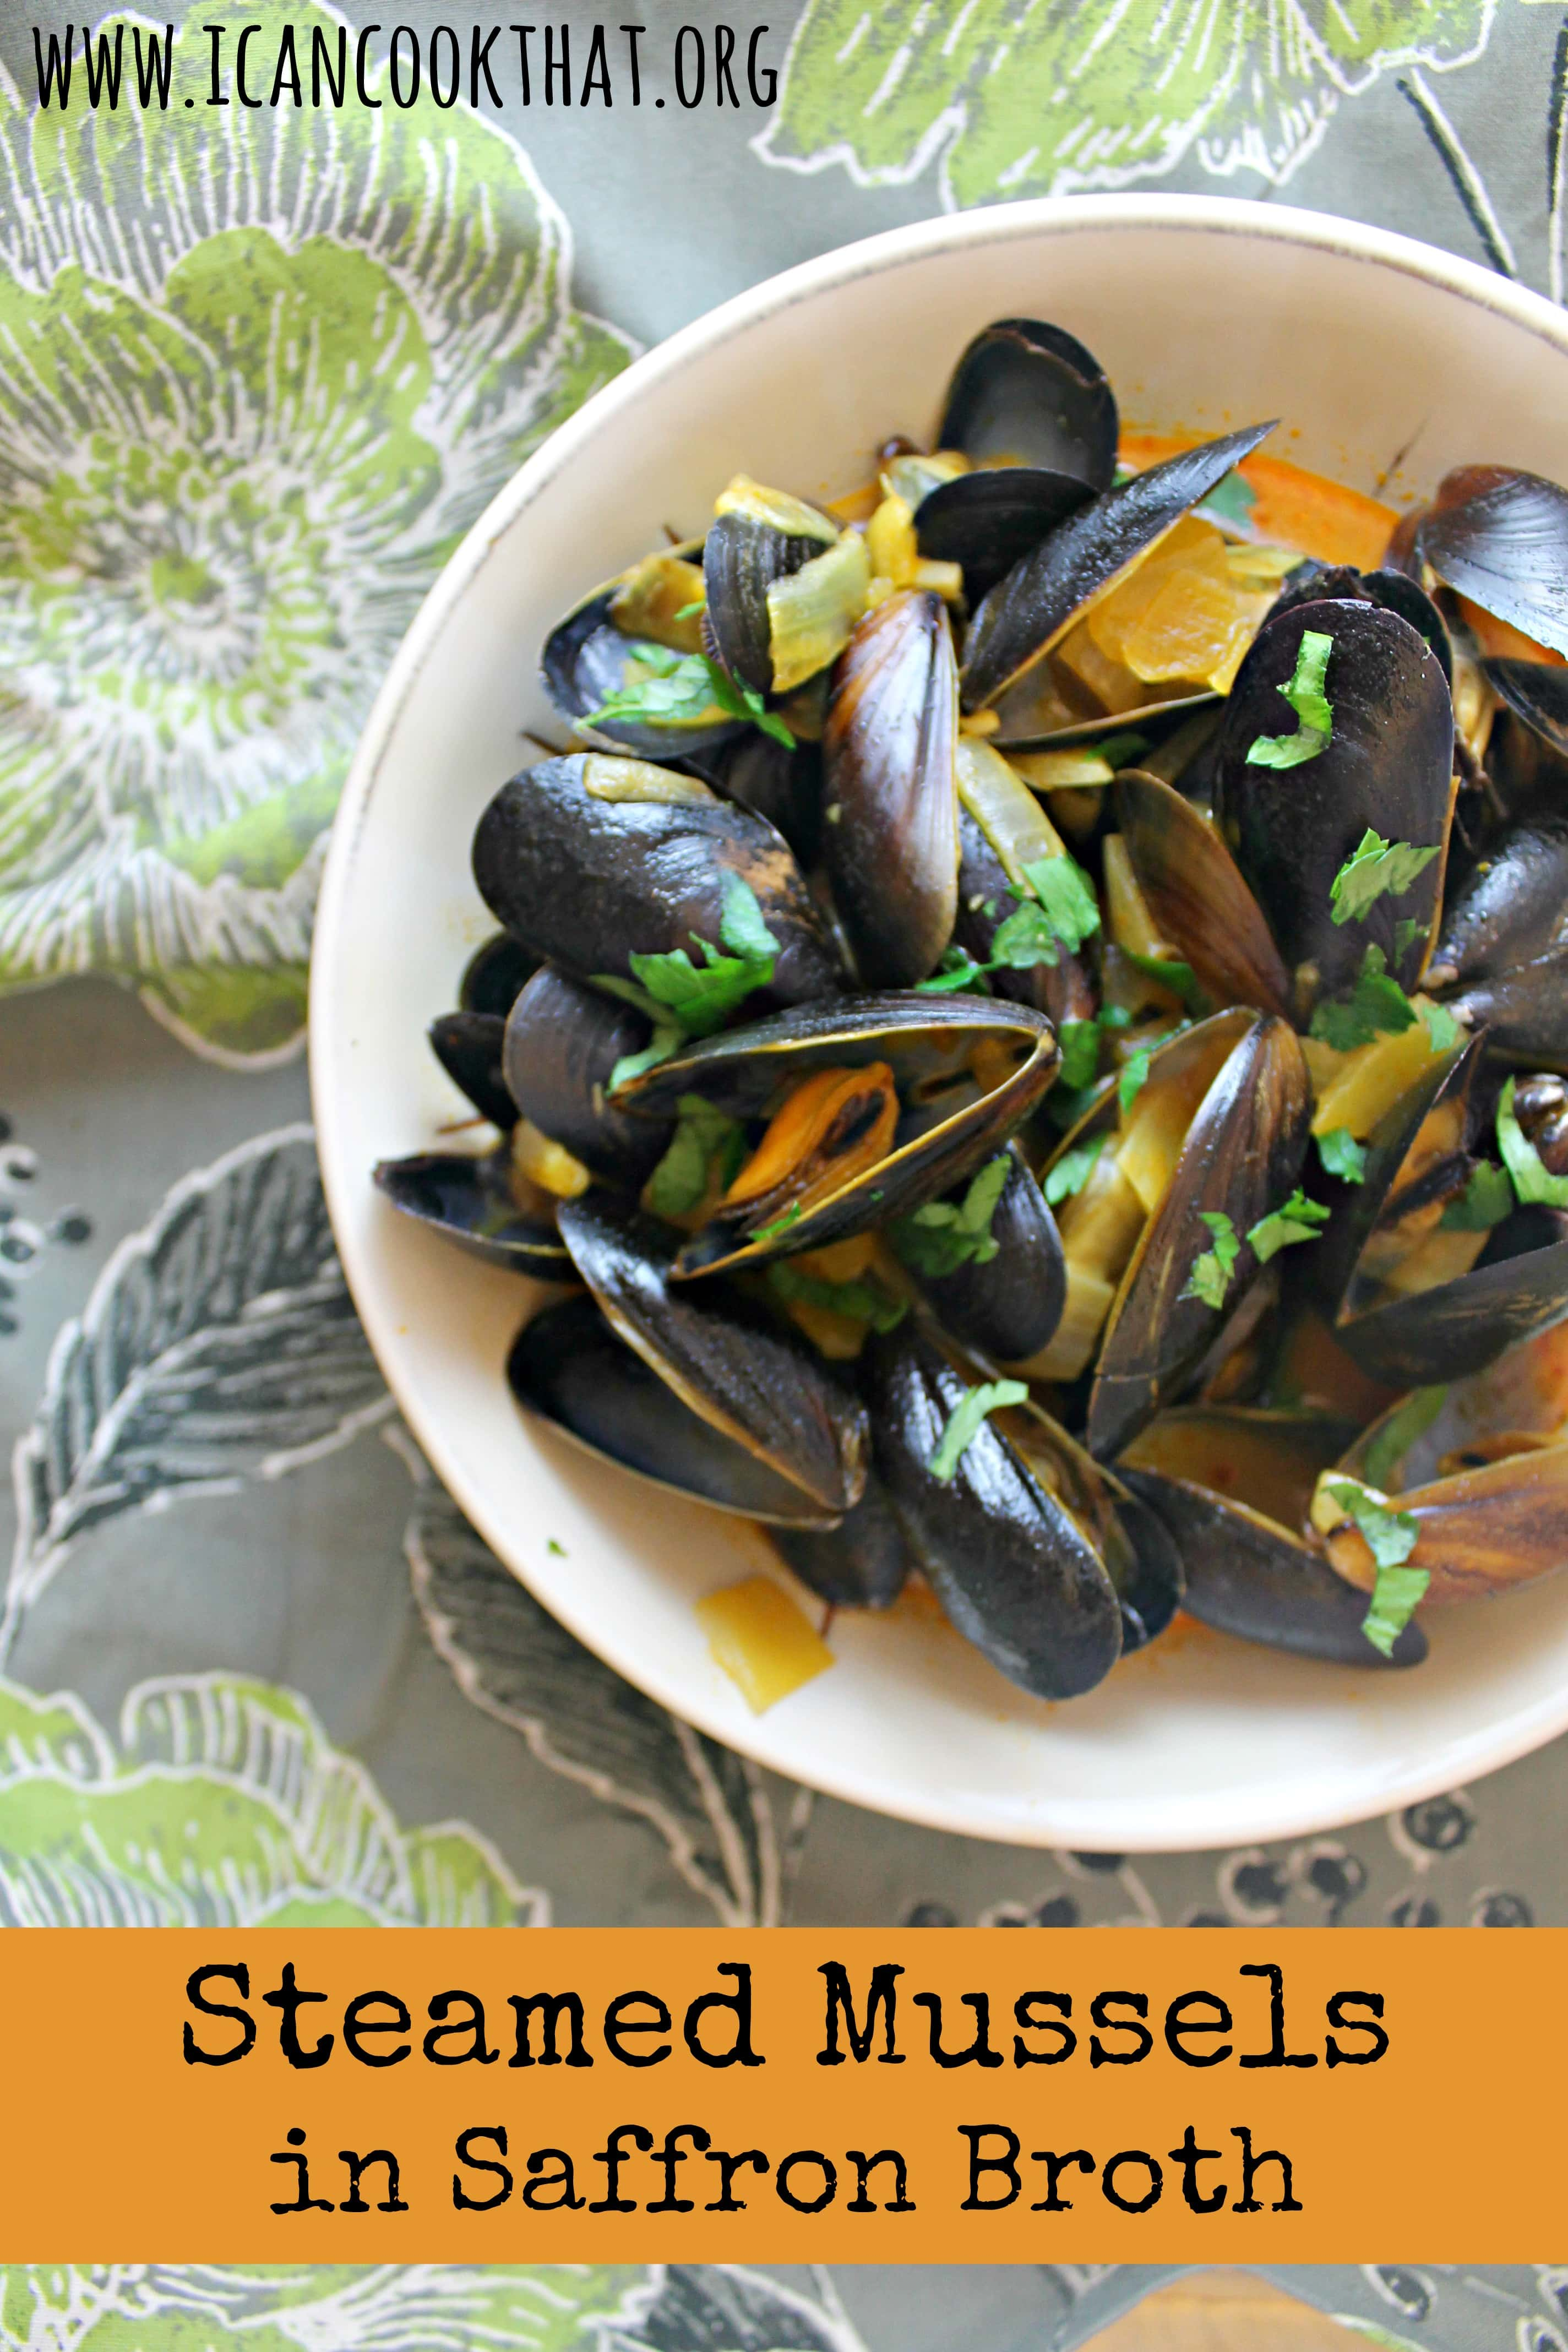 Steamed Mussels in Saffron Broth Recipe | I Can Cook That